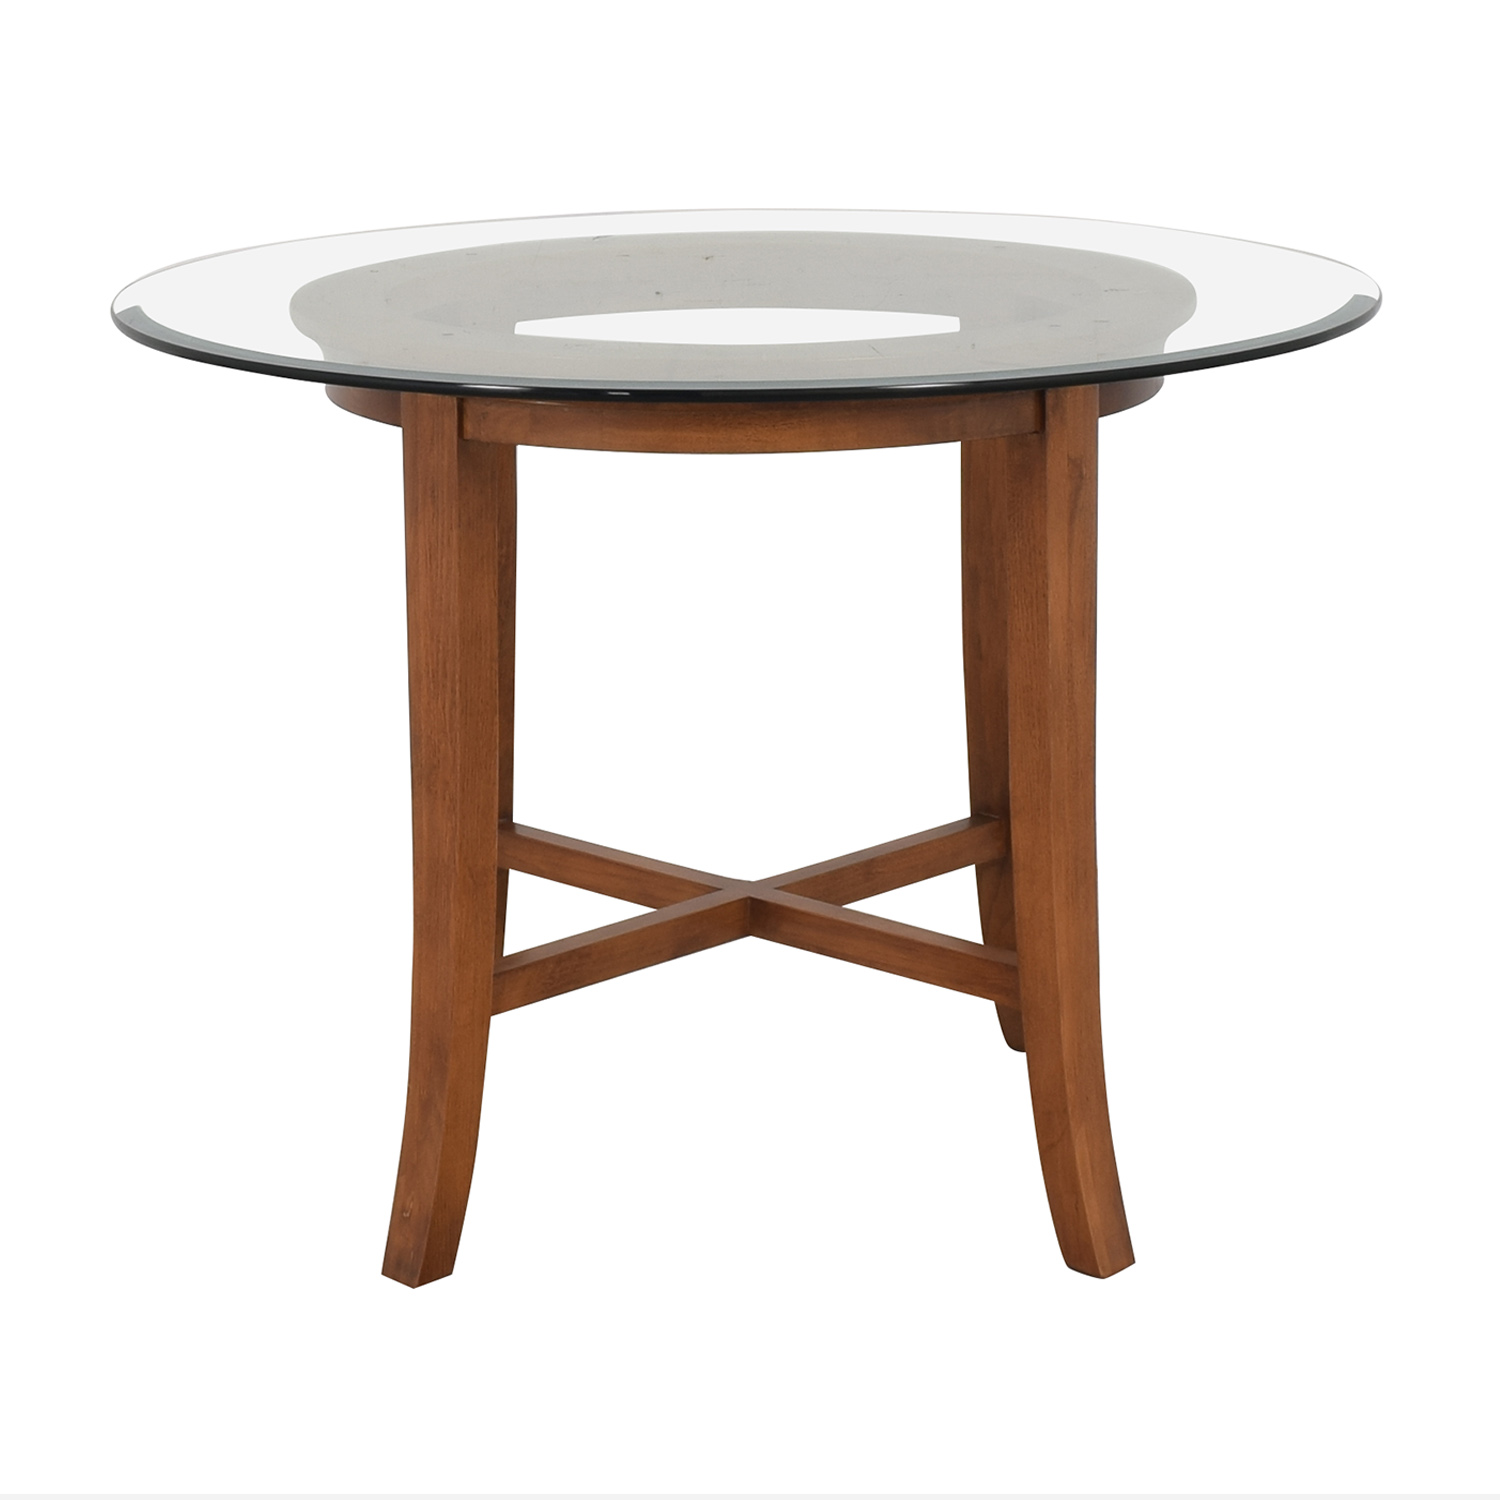 Crate & Barrel Crate & Barrel Halo Round Dining Table dimensions